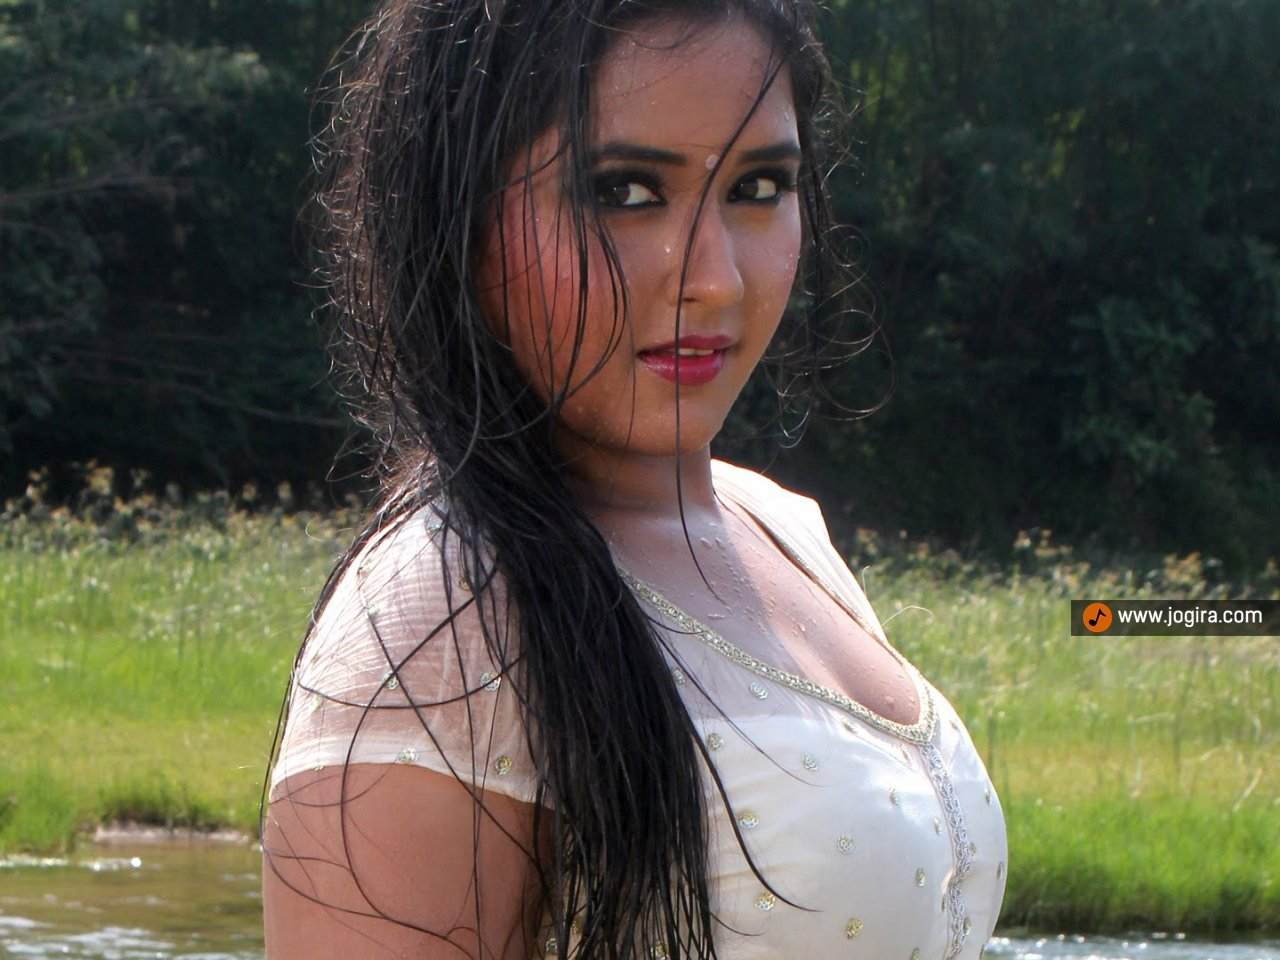 Kajal Raghwani Wallpaper, Picture, Image gallery - Jogira